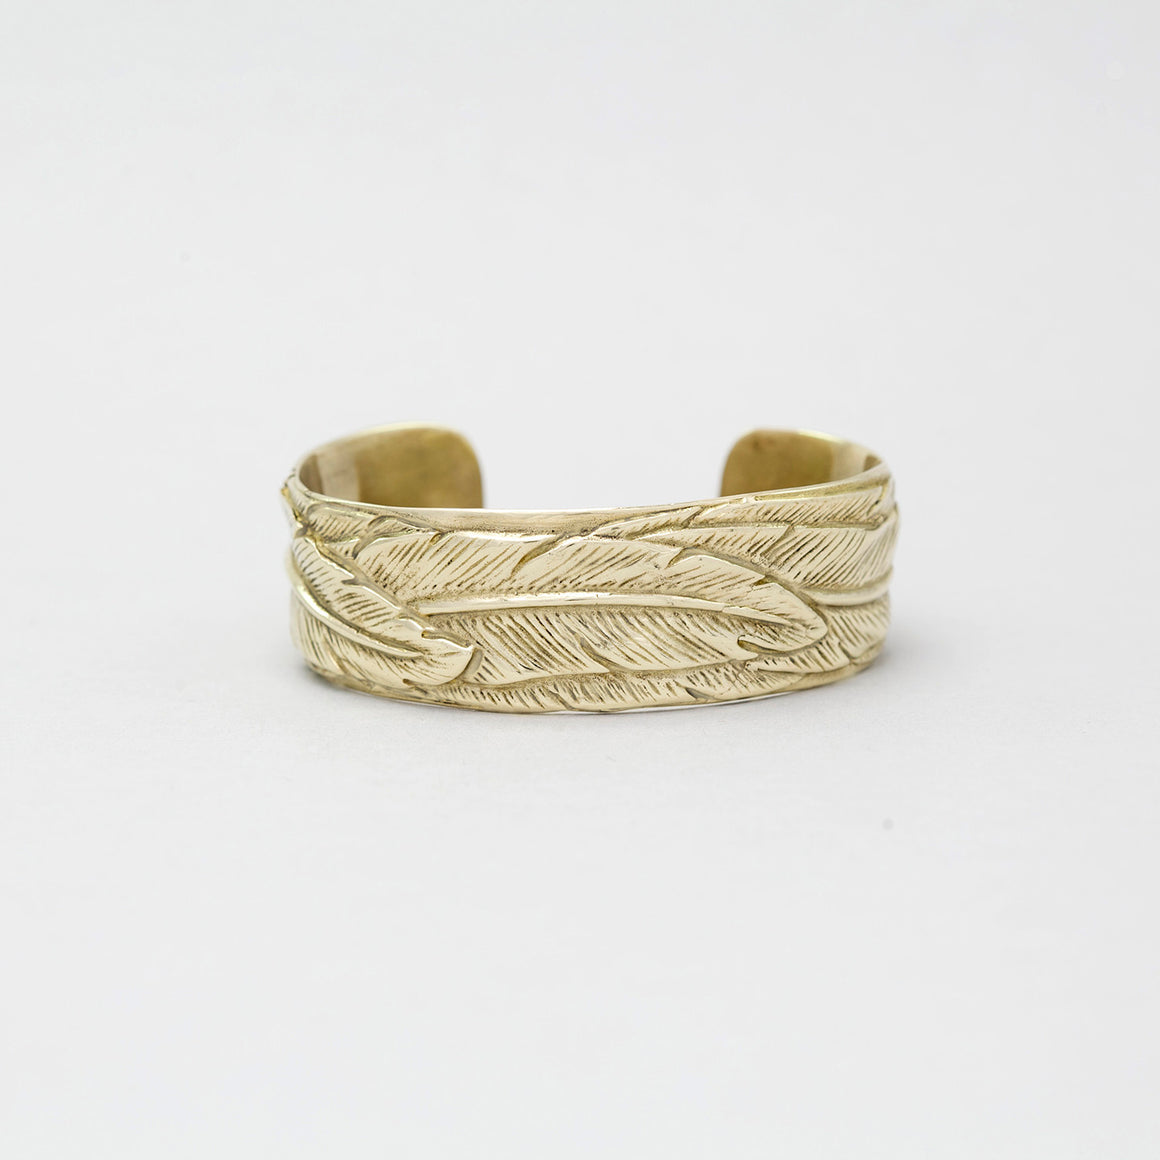 SMALL YELLOW BRASS FEATHER CUFF